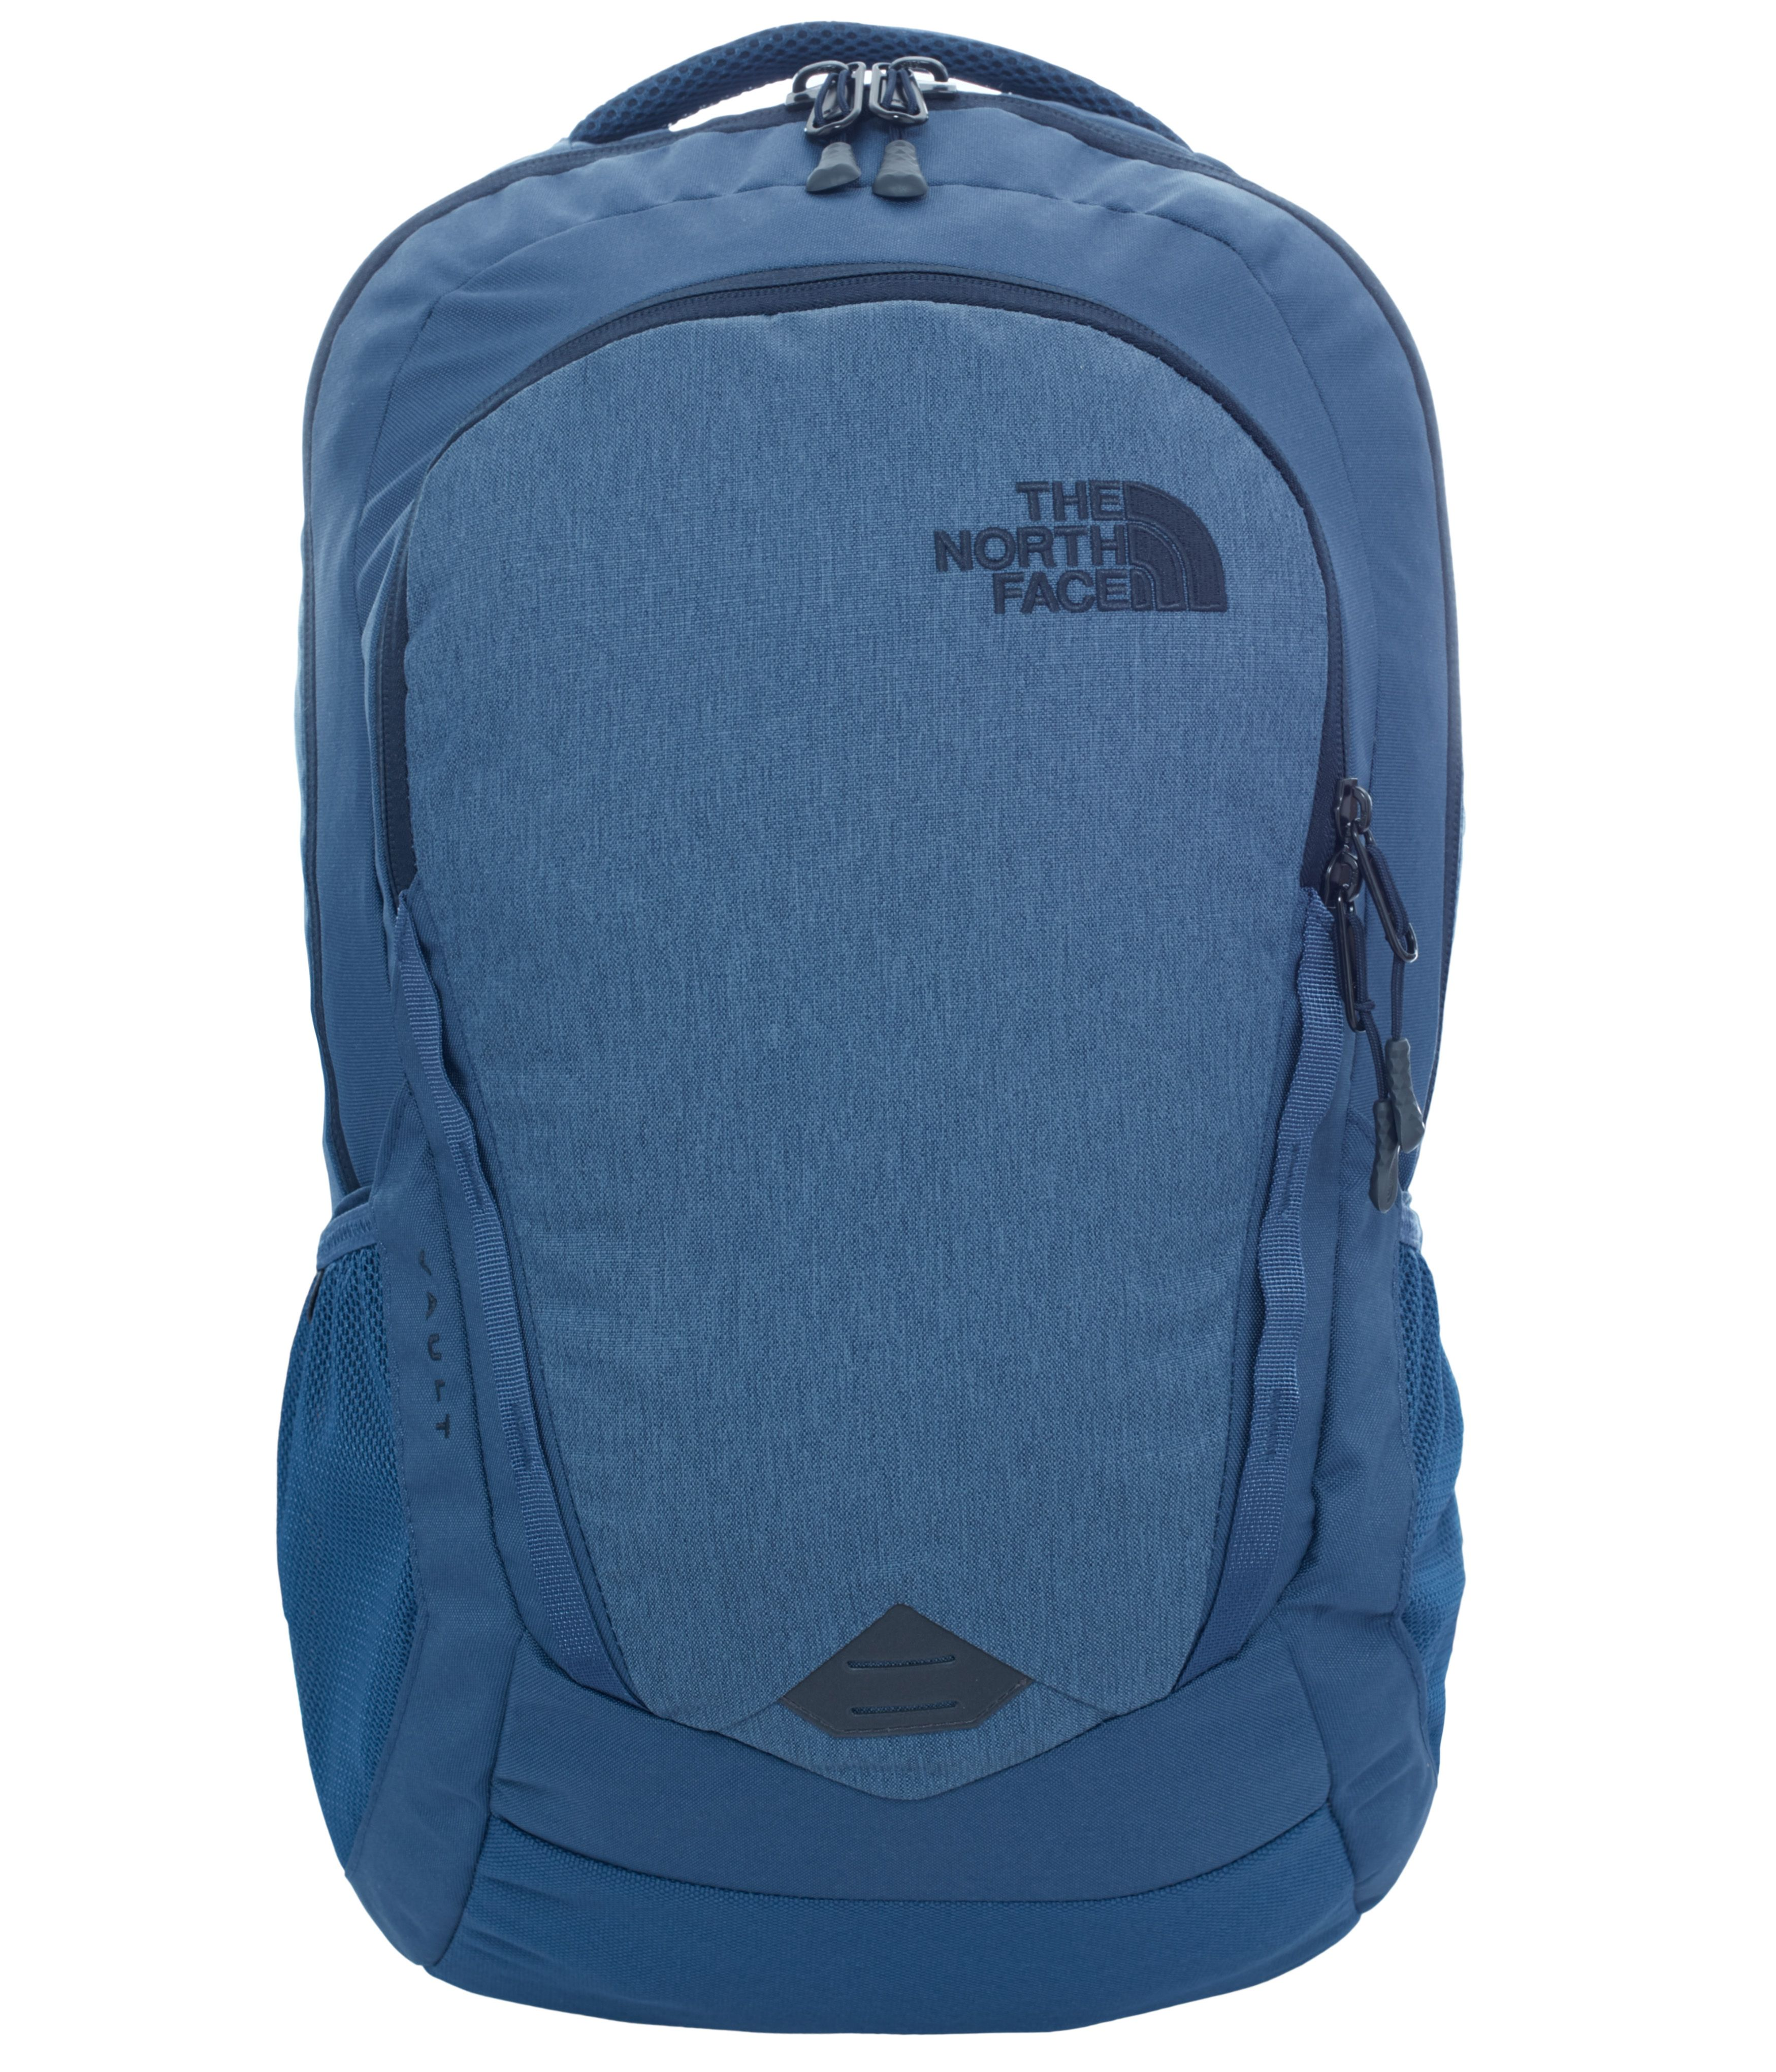 839f6e6a5f The North Face Borealis Backpack Urban Navy And Tnf Red- Fenix ...